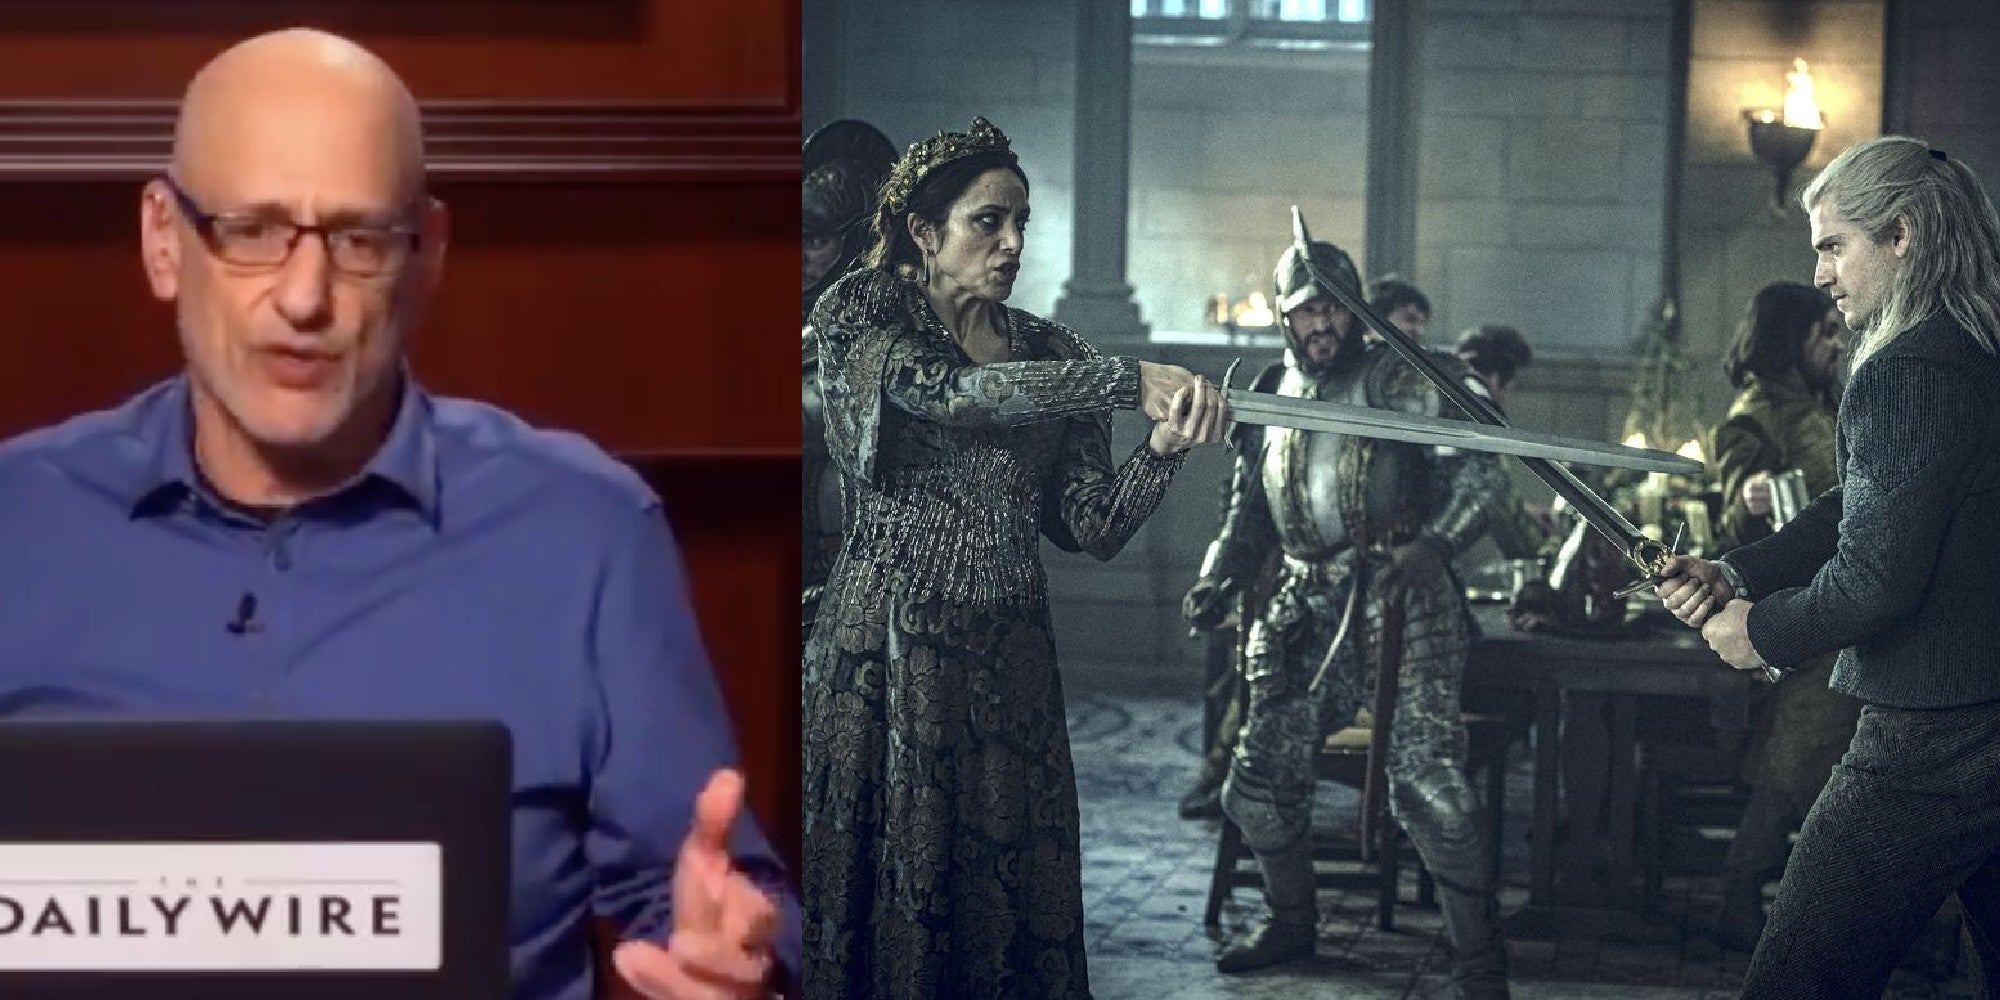 Man gets history lesson after moaning about a woman fighting with a sword in The Witcher